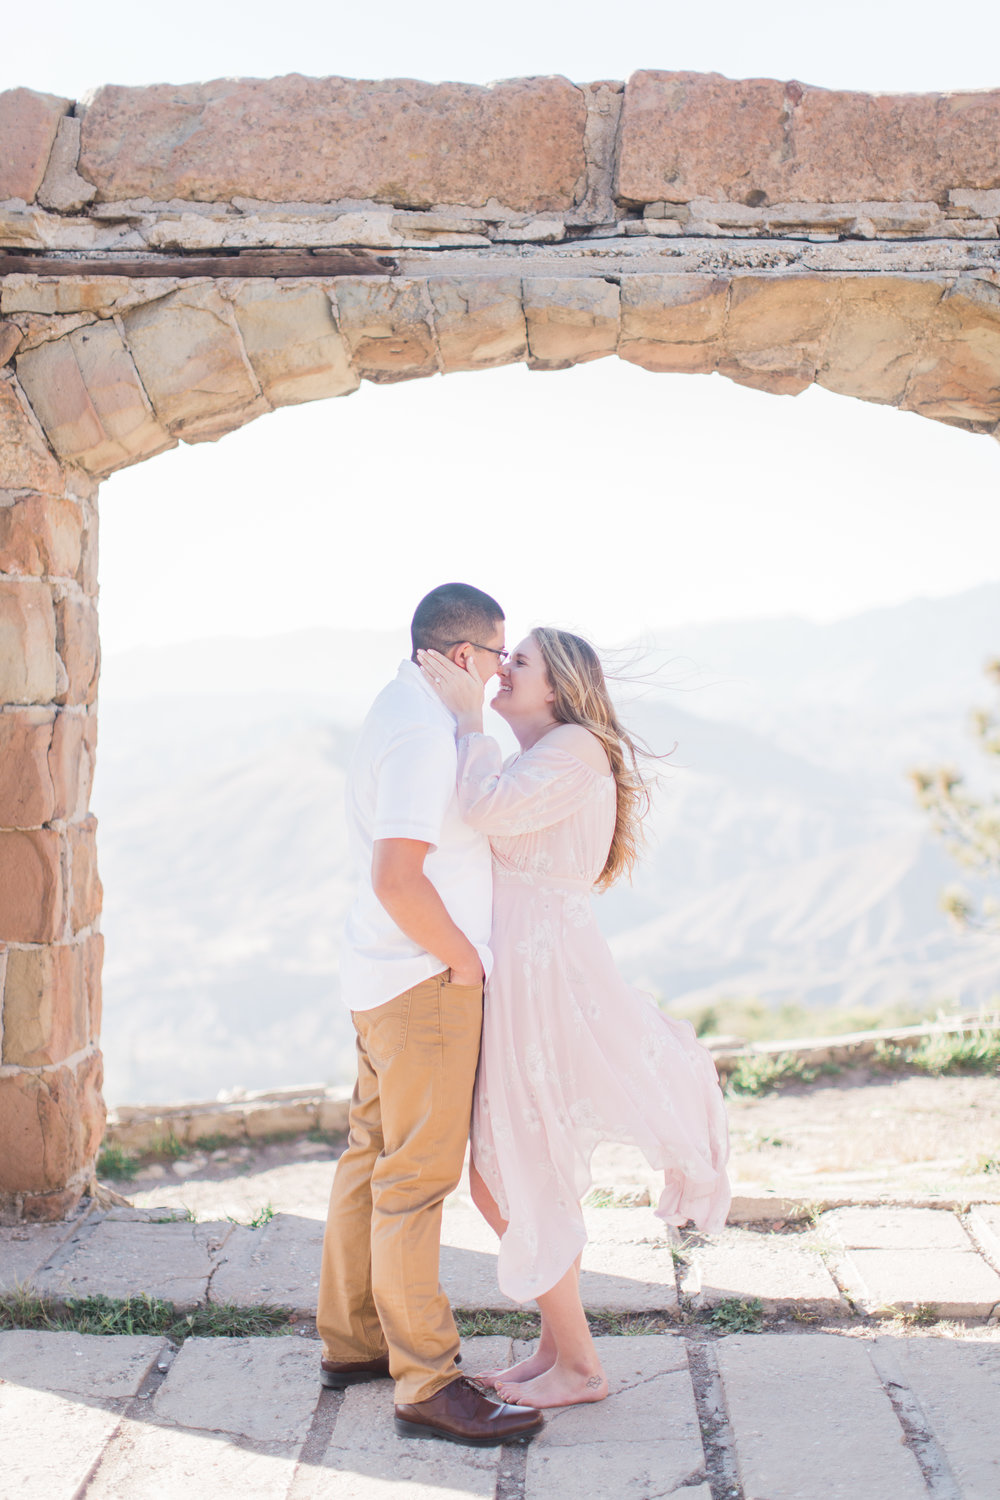 Santa Monica Mountains Engagement Photos - The Overwhelmed Bride Wedding Blog